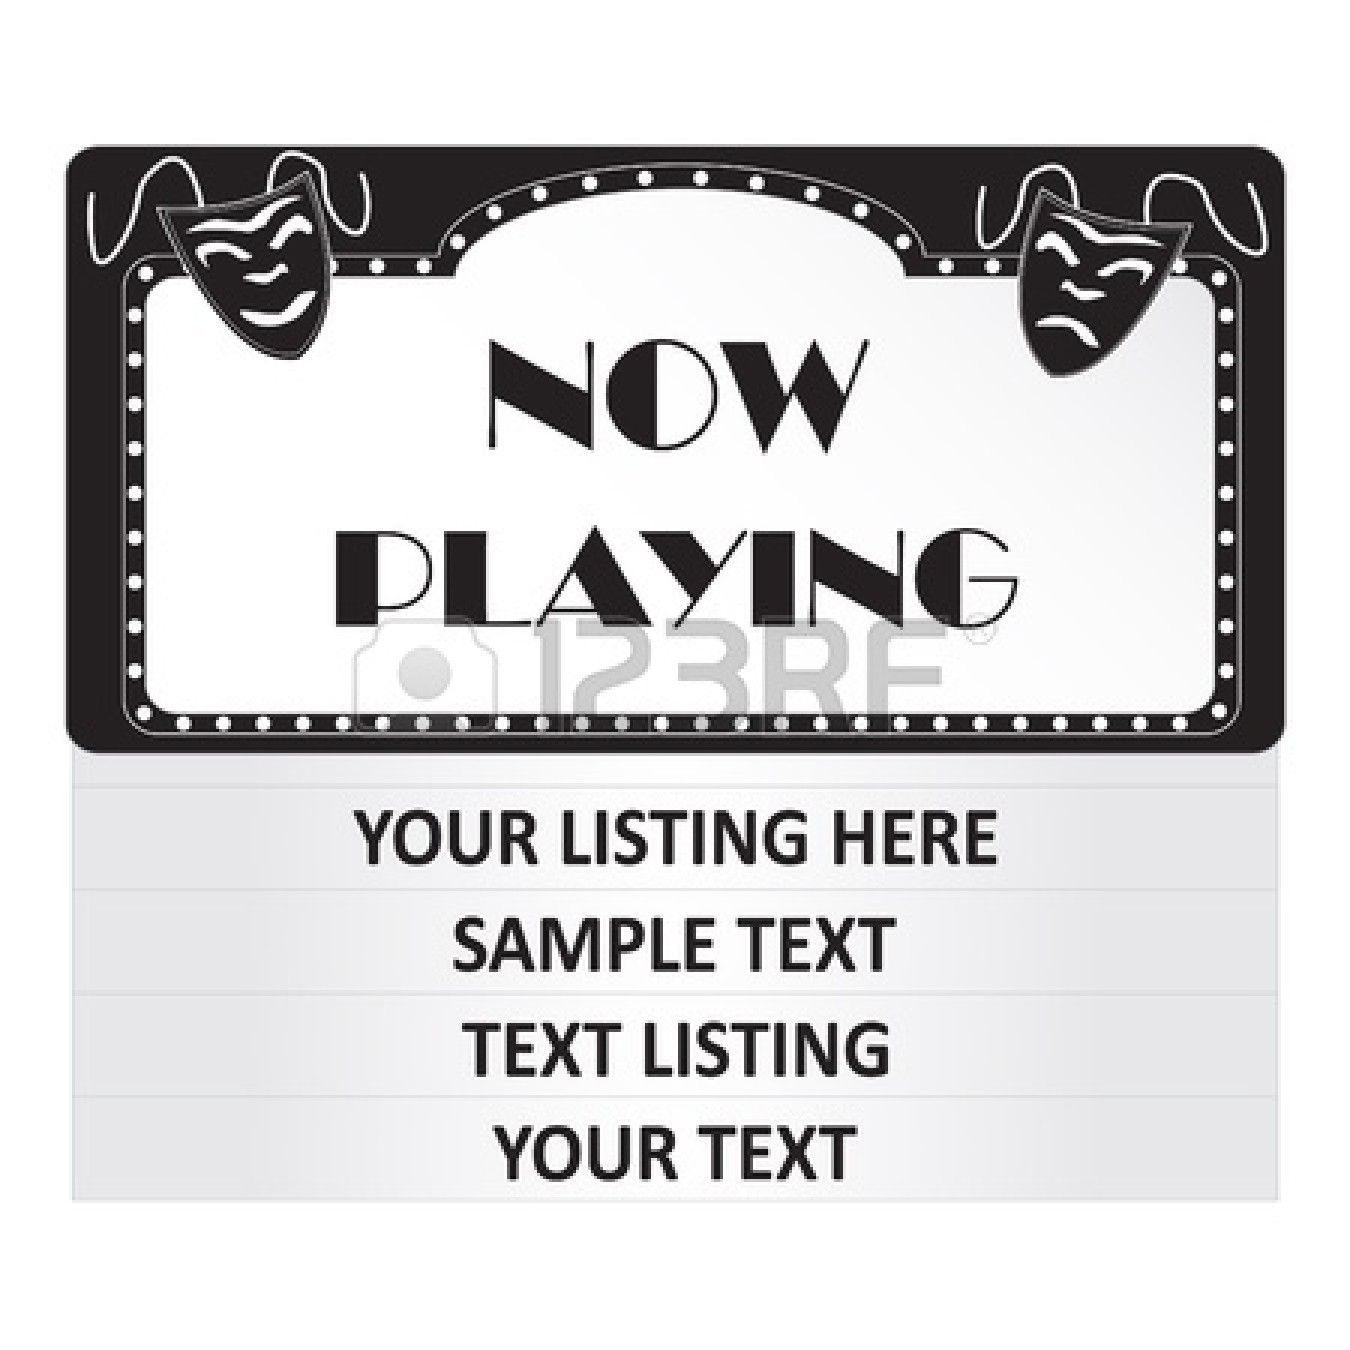 Image of a now playing cinema sign isolated on a white